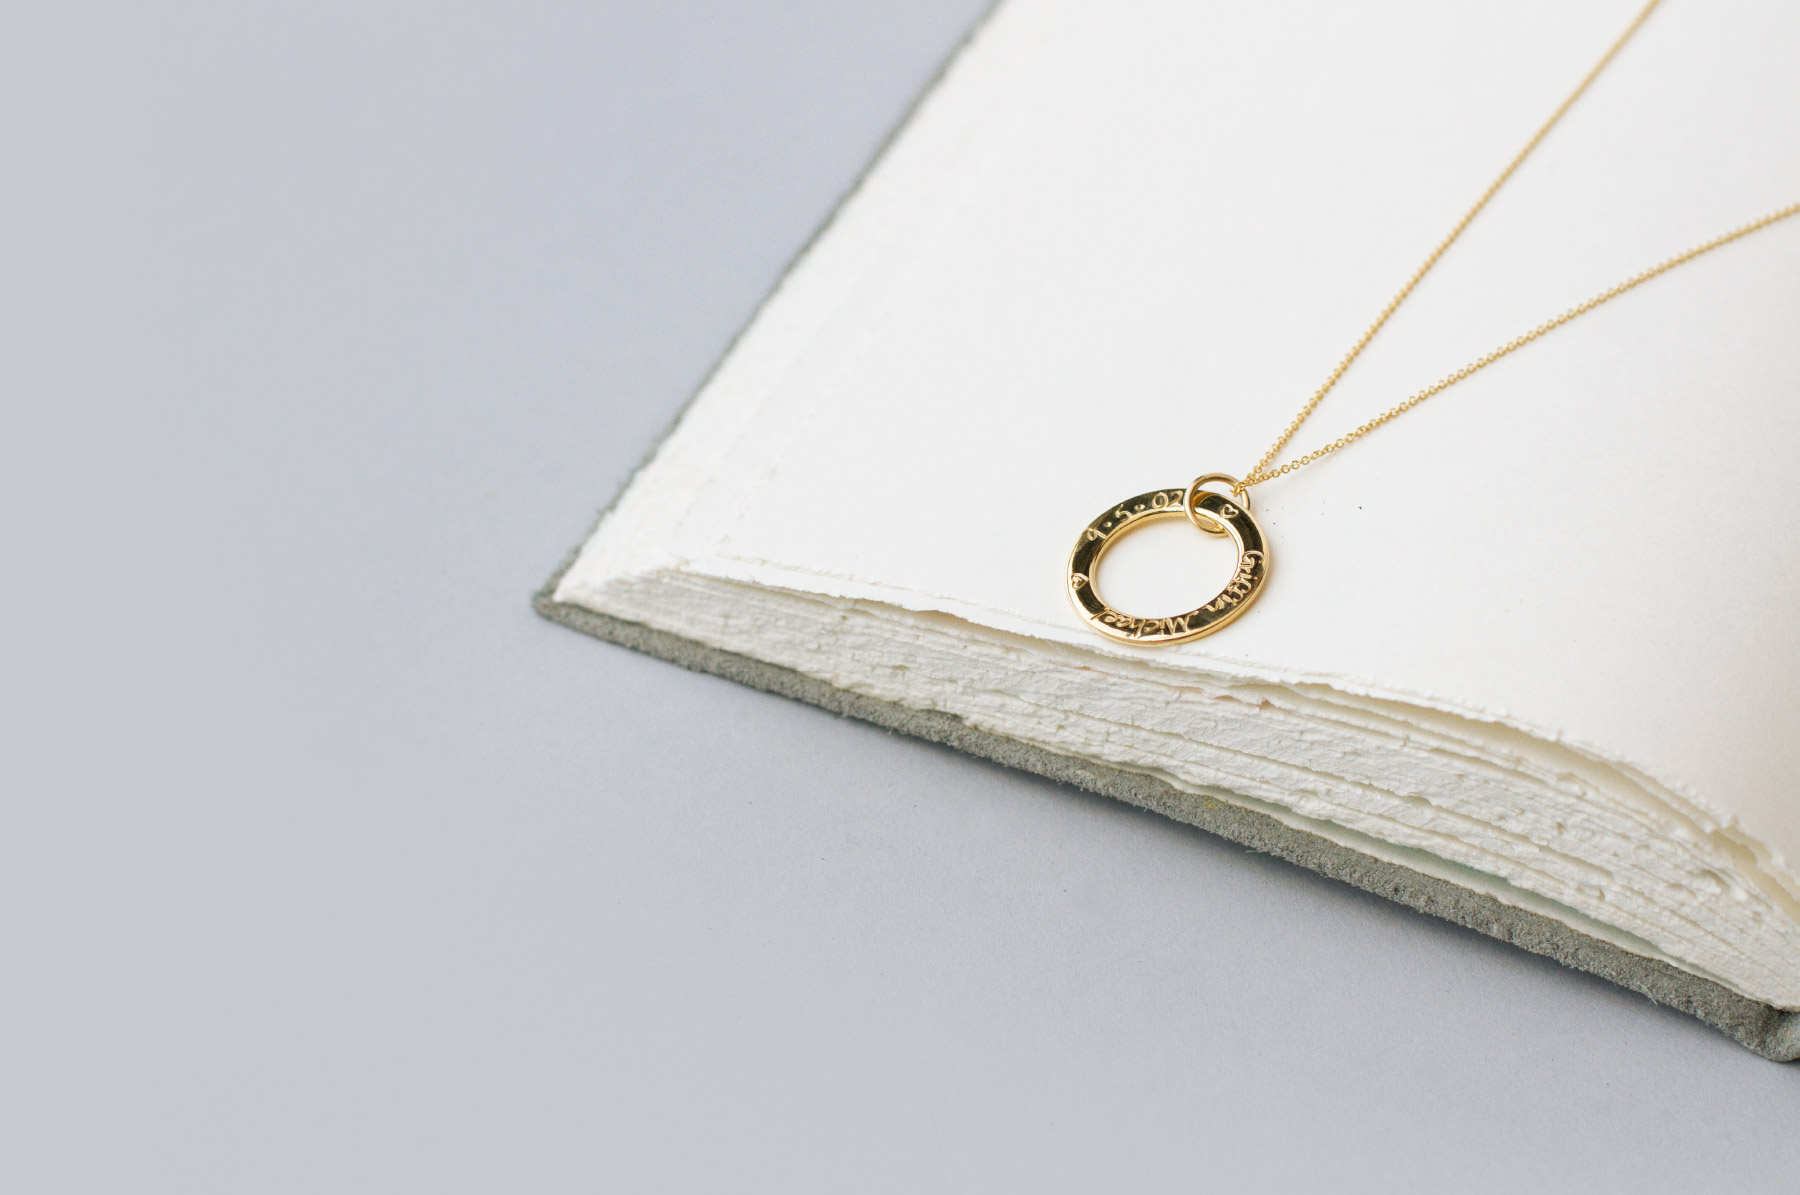 Fuze-Branding-Mommy-Jewelry-Personalized-Jewelry-for-Mommies-Delicate-Engraved-Gold-Charm-Necklace-Product-Photography